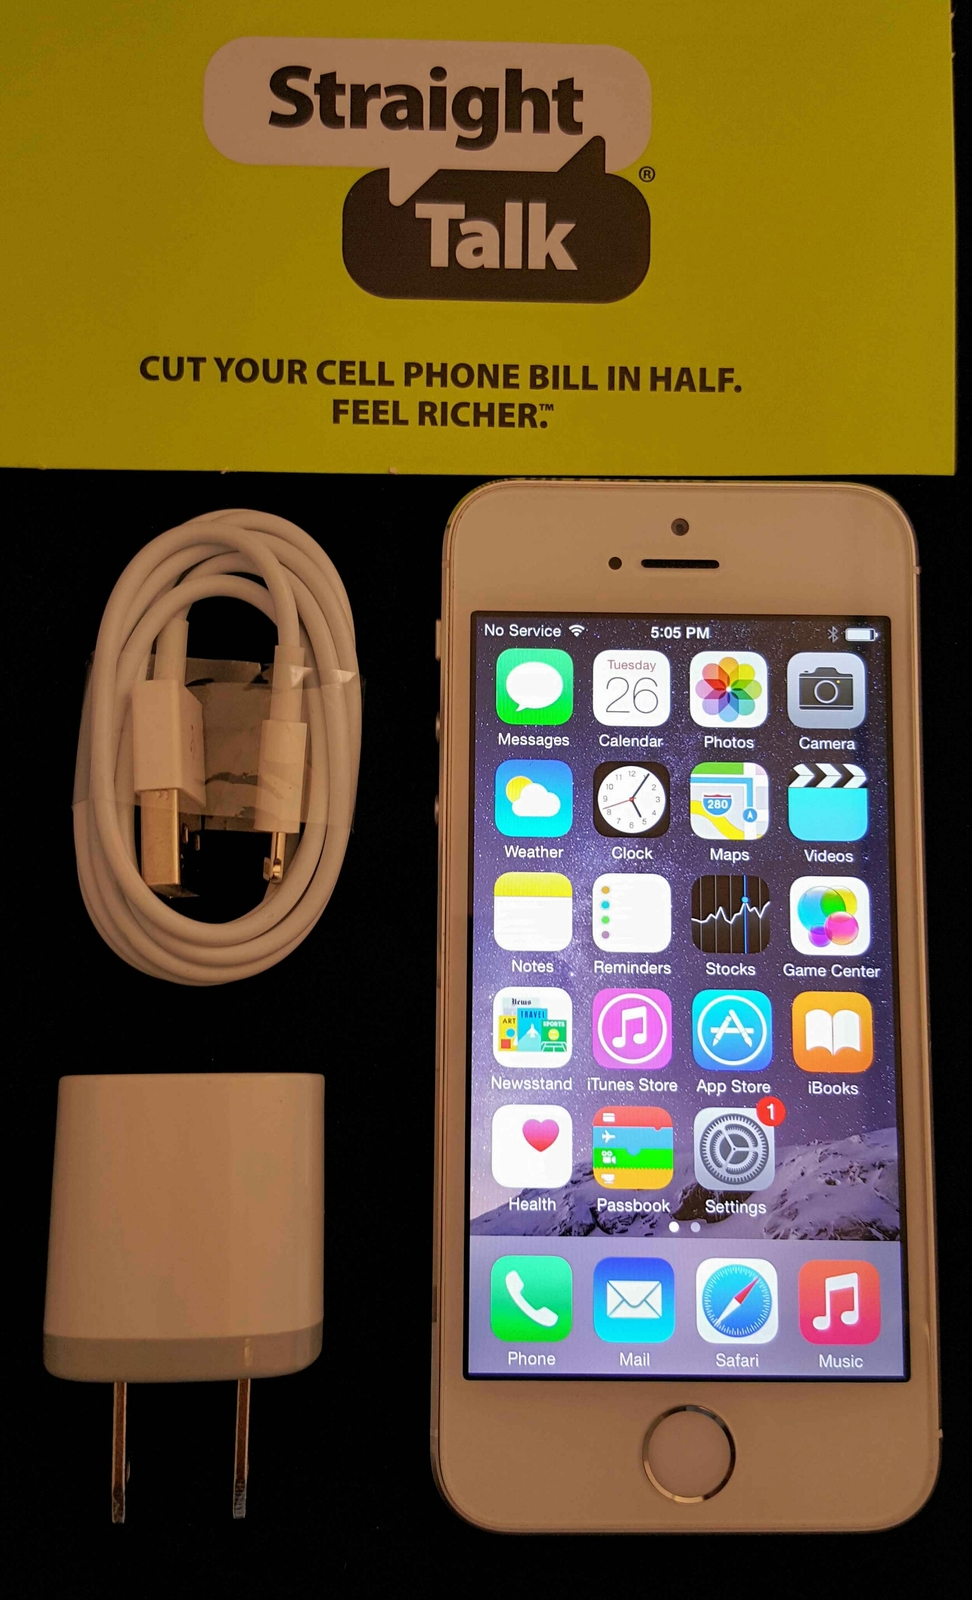 iphone 5s straight talk verizon talk apple iphone 5s silver 16gb wireless phone 1161